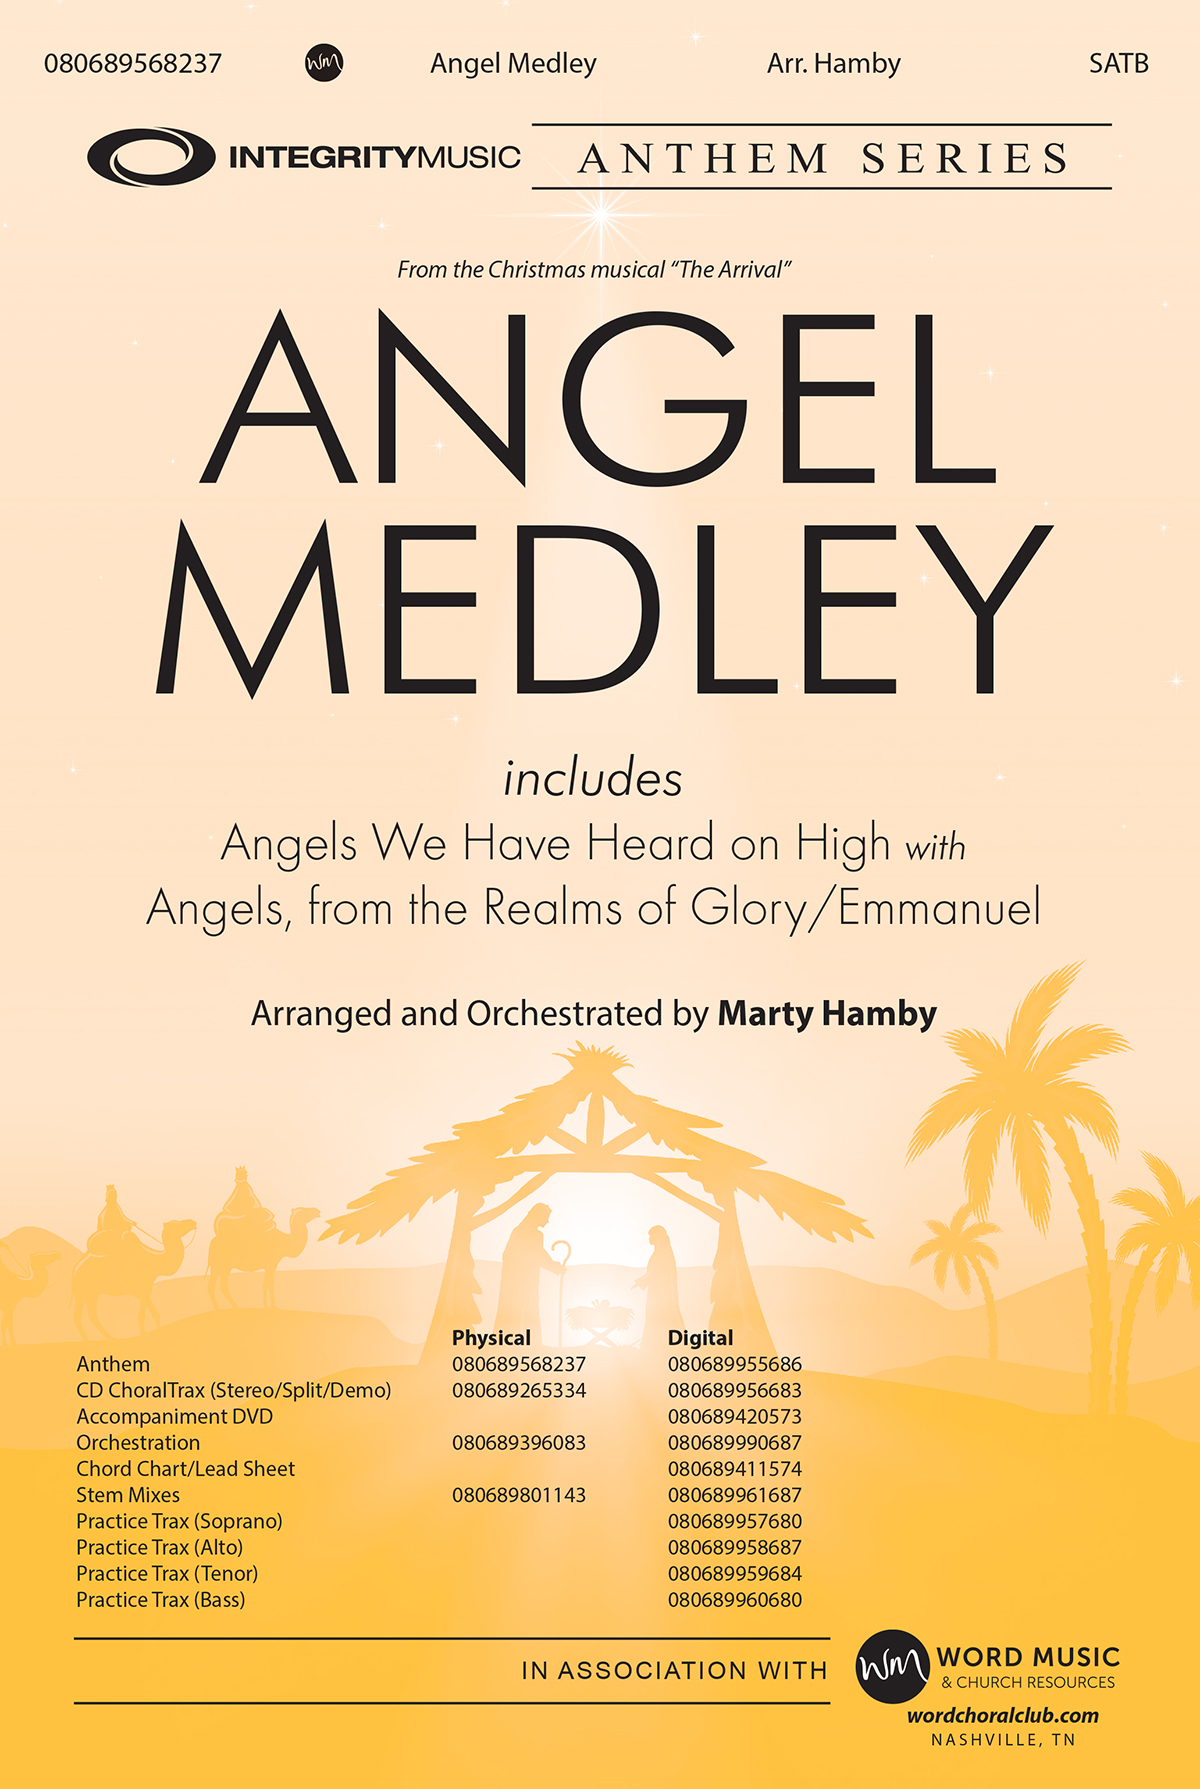 Angel Medley